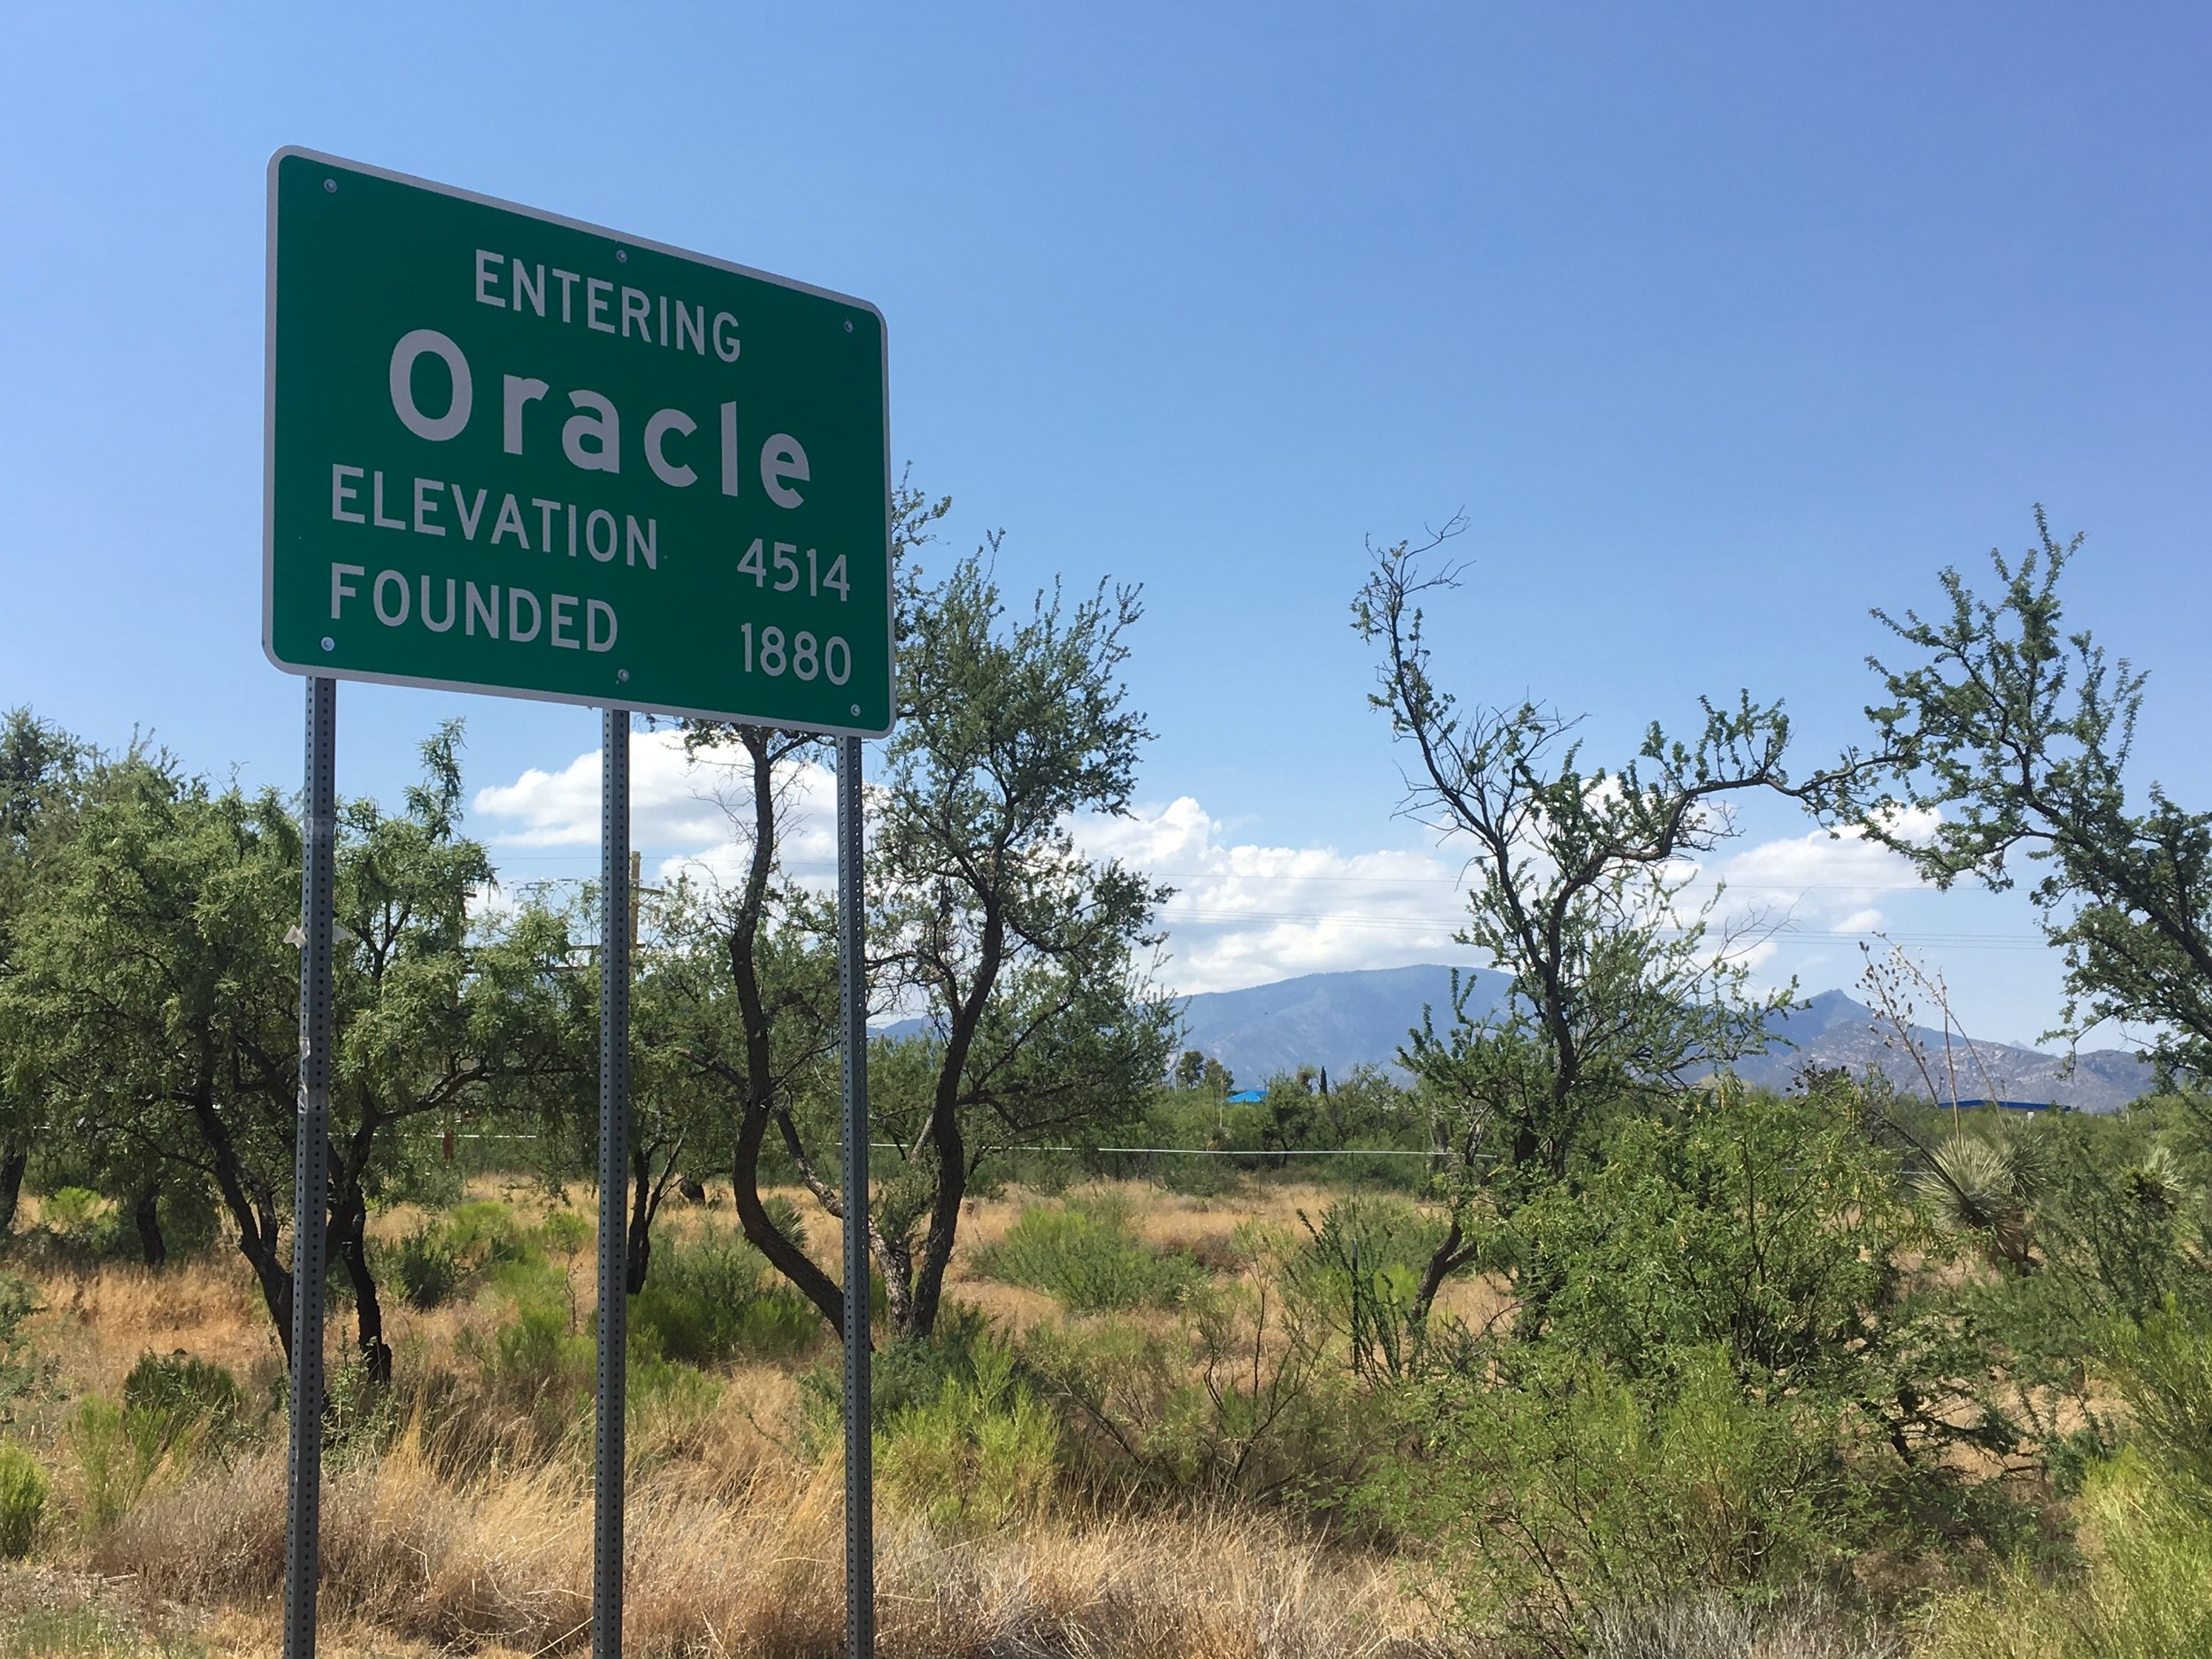 Fun facts about Oracle, Arizona: - Buffalo Bill Cody owned a gold mine in Oracle briefly.Oracle is the location of the Biosphere 2 experiment.Oracle was the postal address for environmentalist author Edward Abbey, who never lived in Oracle often visited.The Arizona Trail passes through Oracle.Oracle is the gateway to the road up the